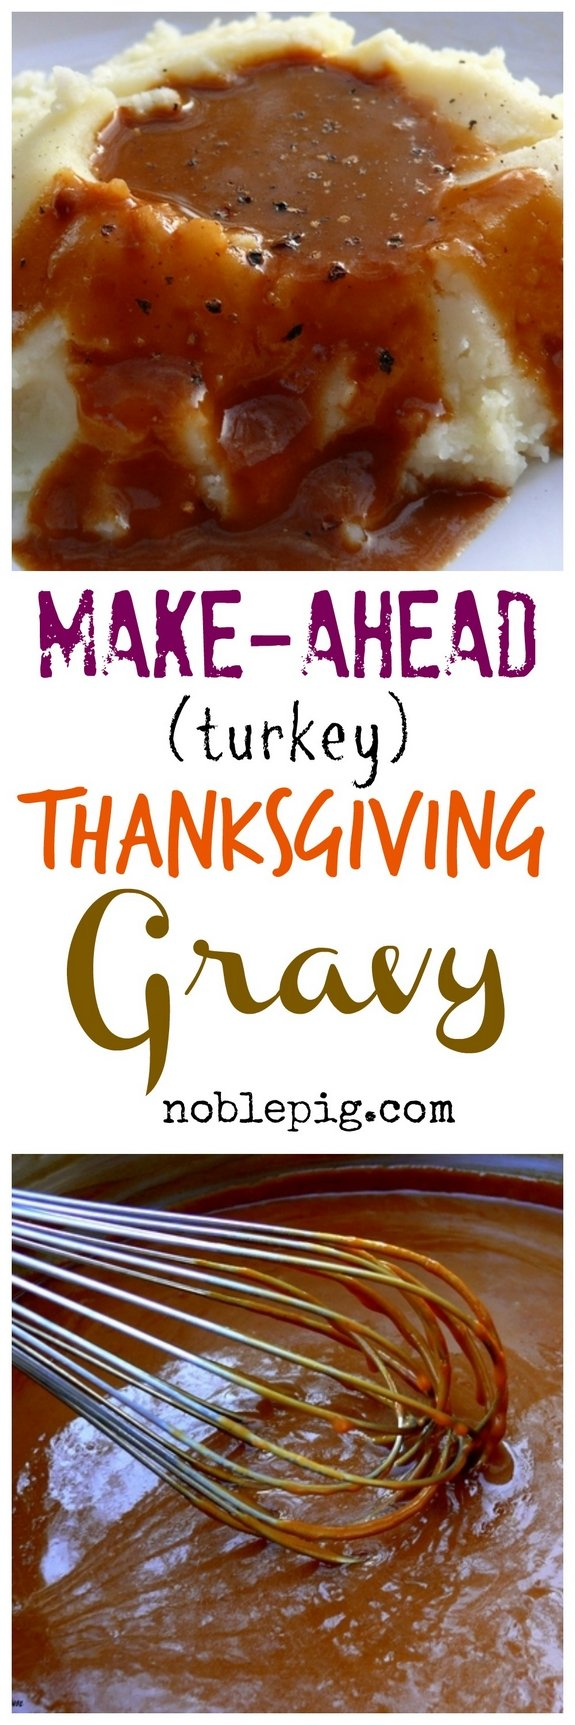 Make Ahead Turkey Thanksgiving Gravy